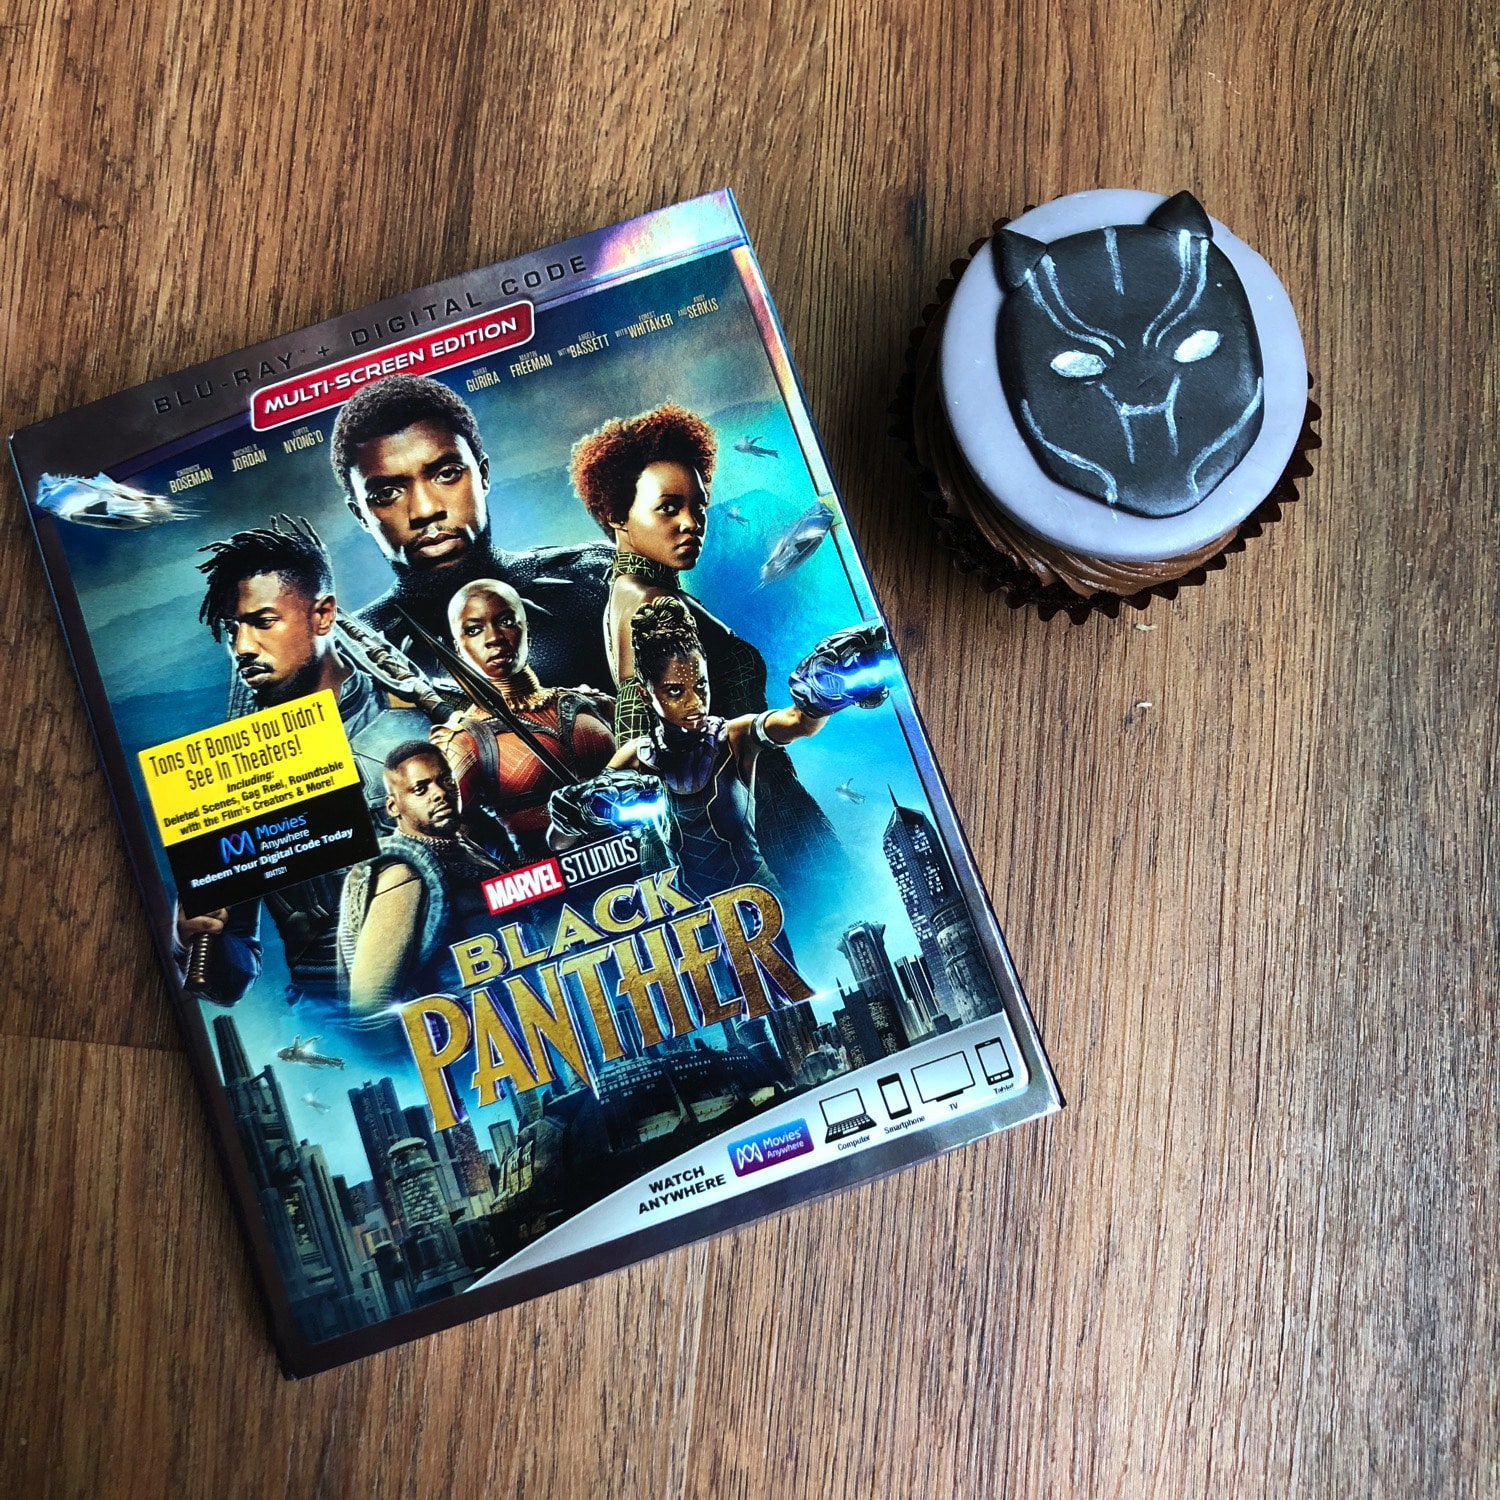 Black Panther Blu-ray and cupcake